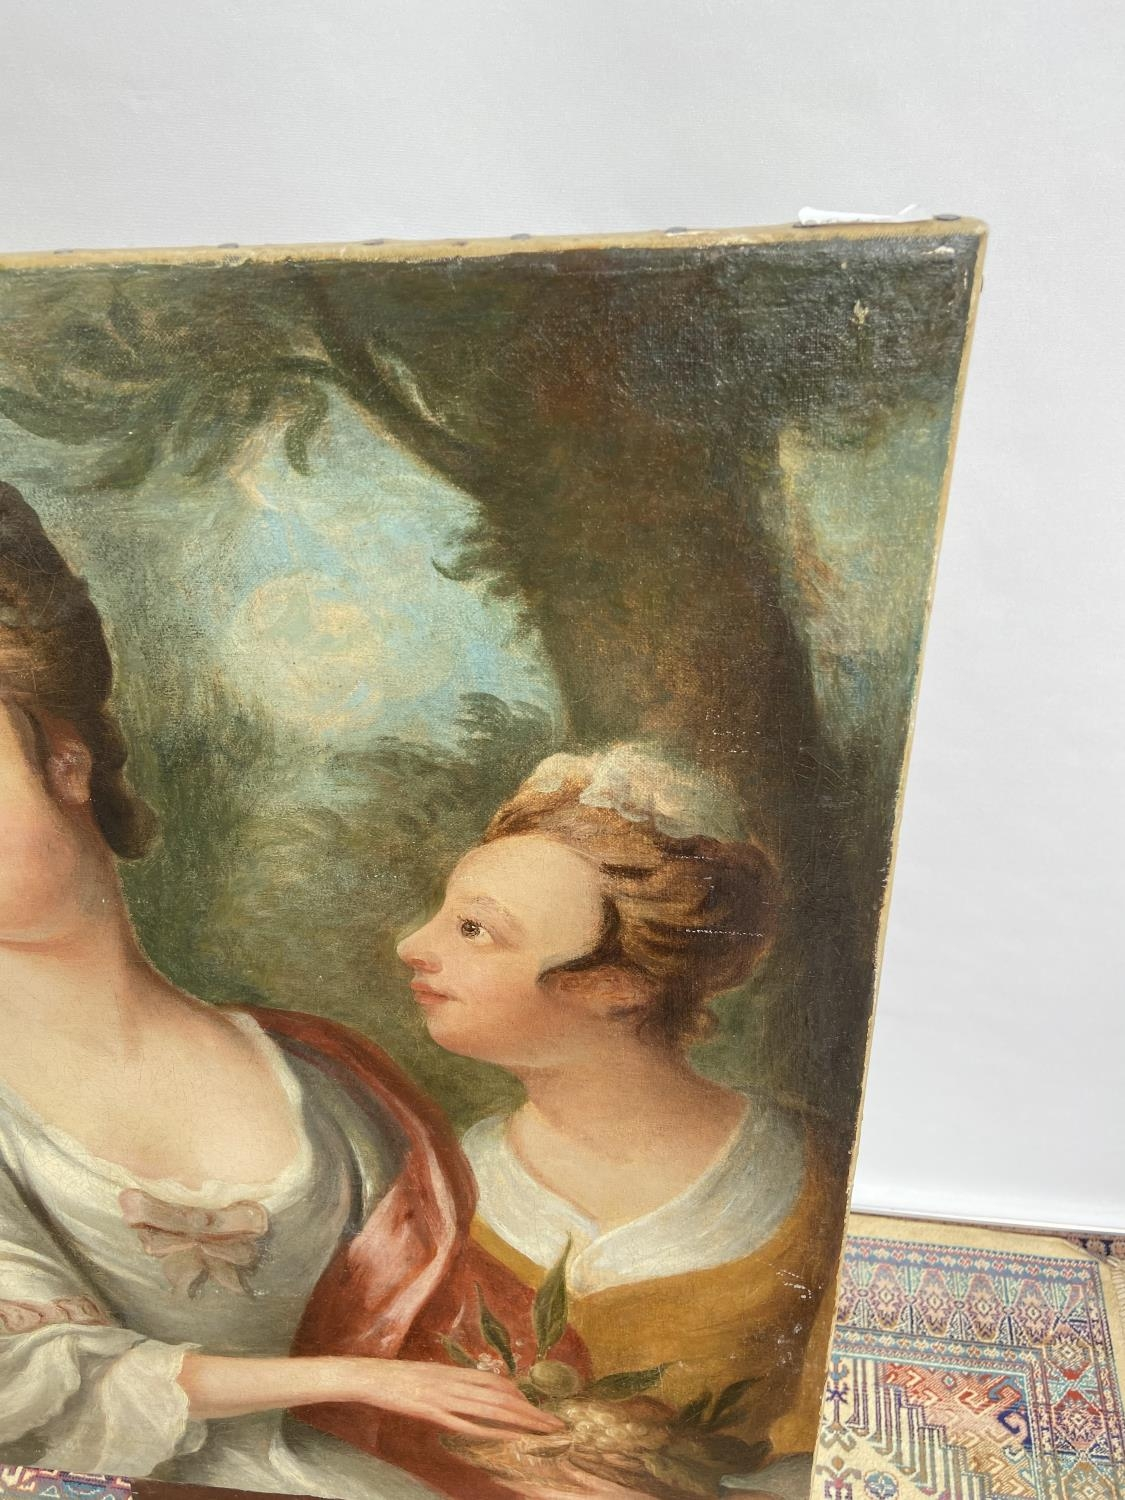 An 18th/19th century oil painting on canvas depicting two ladies posing [74x61cm] - Image 3 of 8